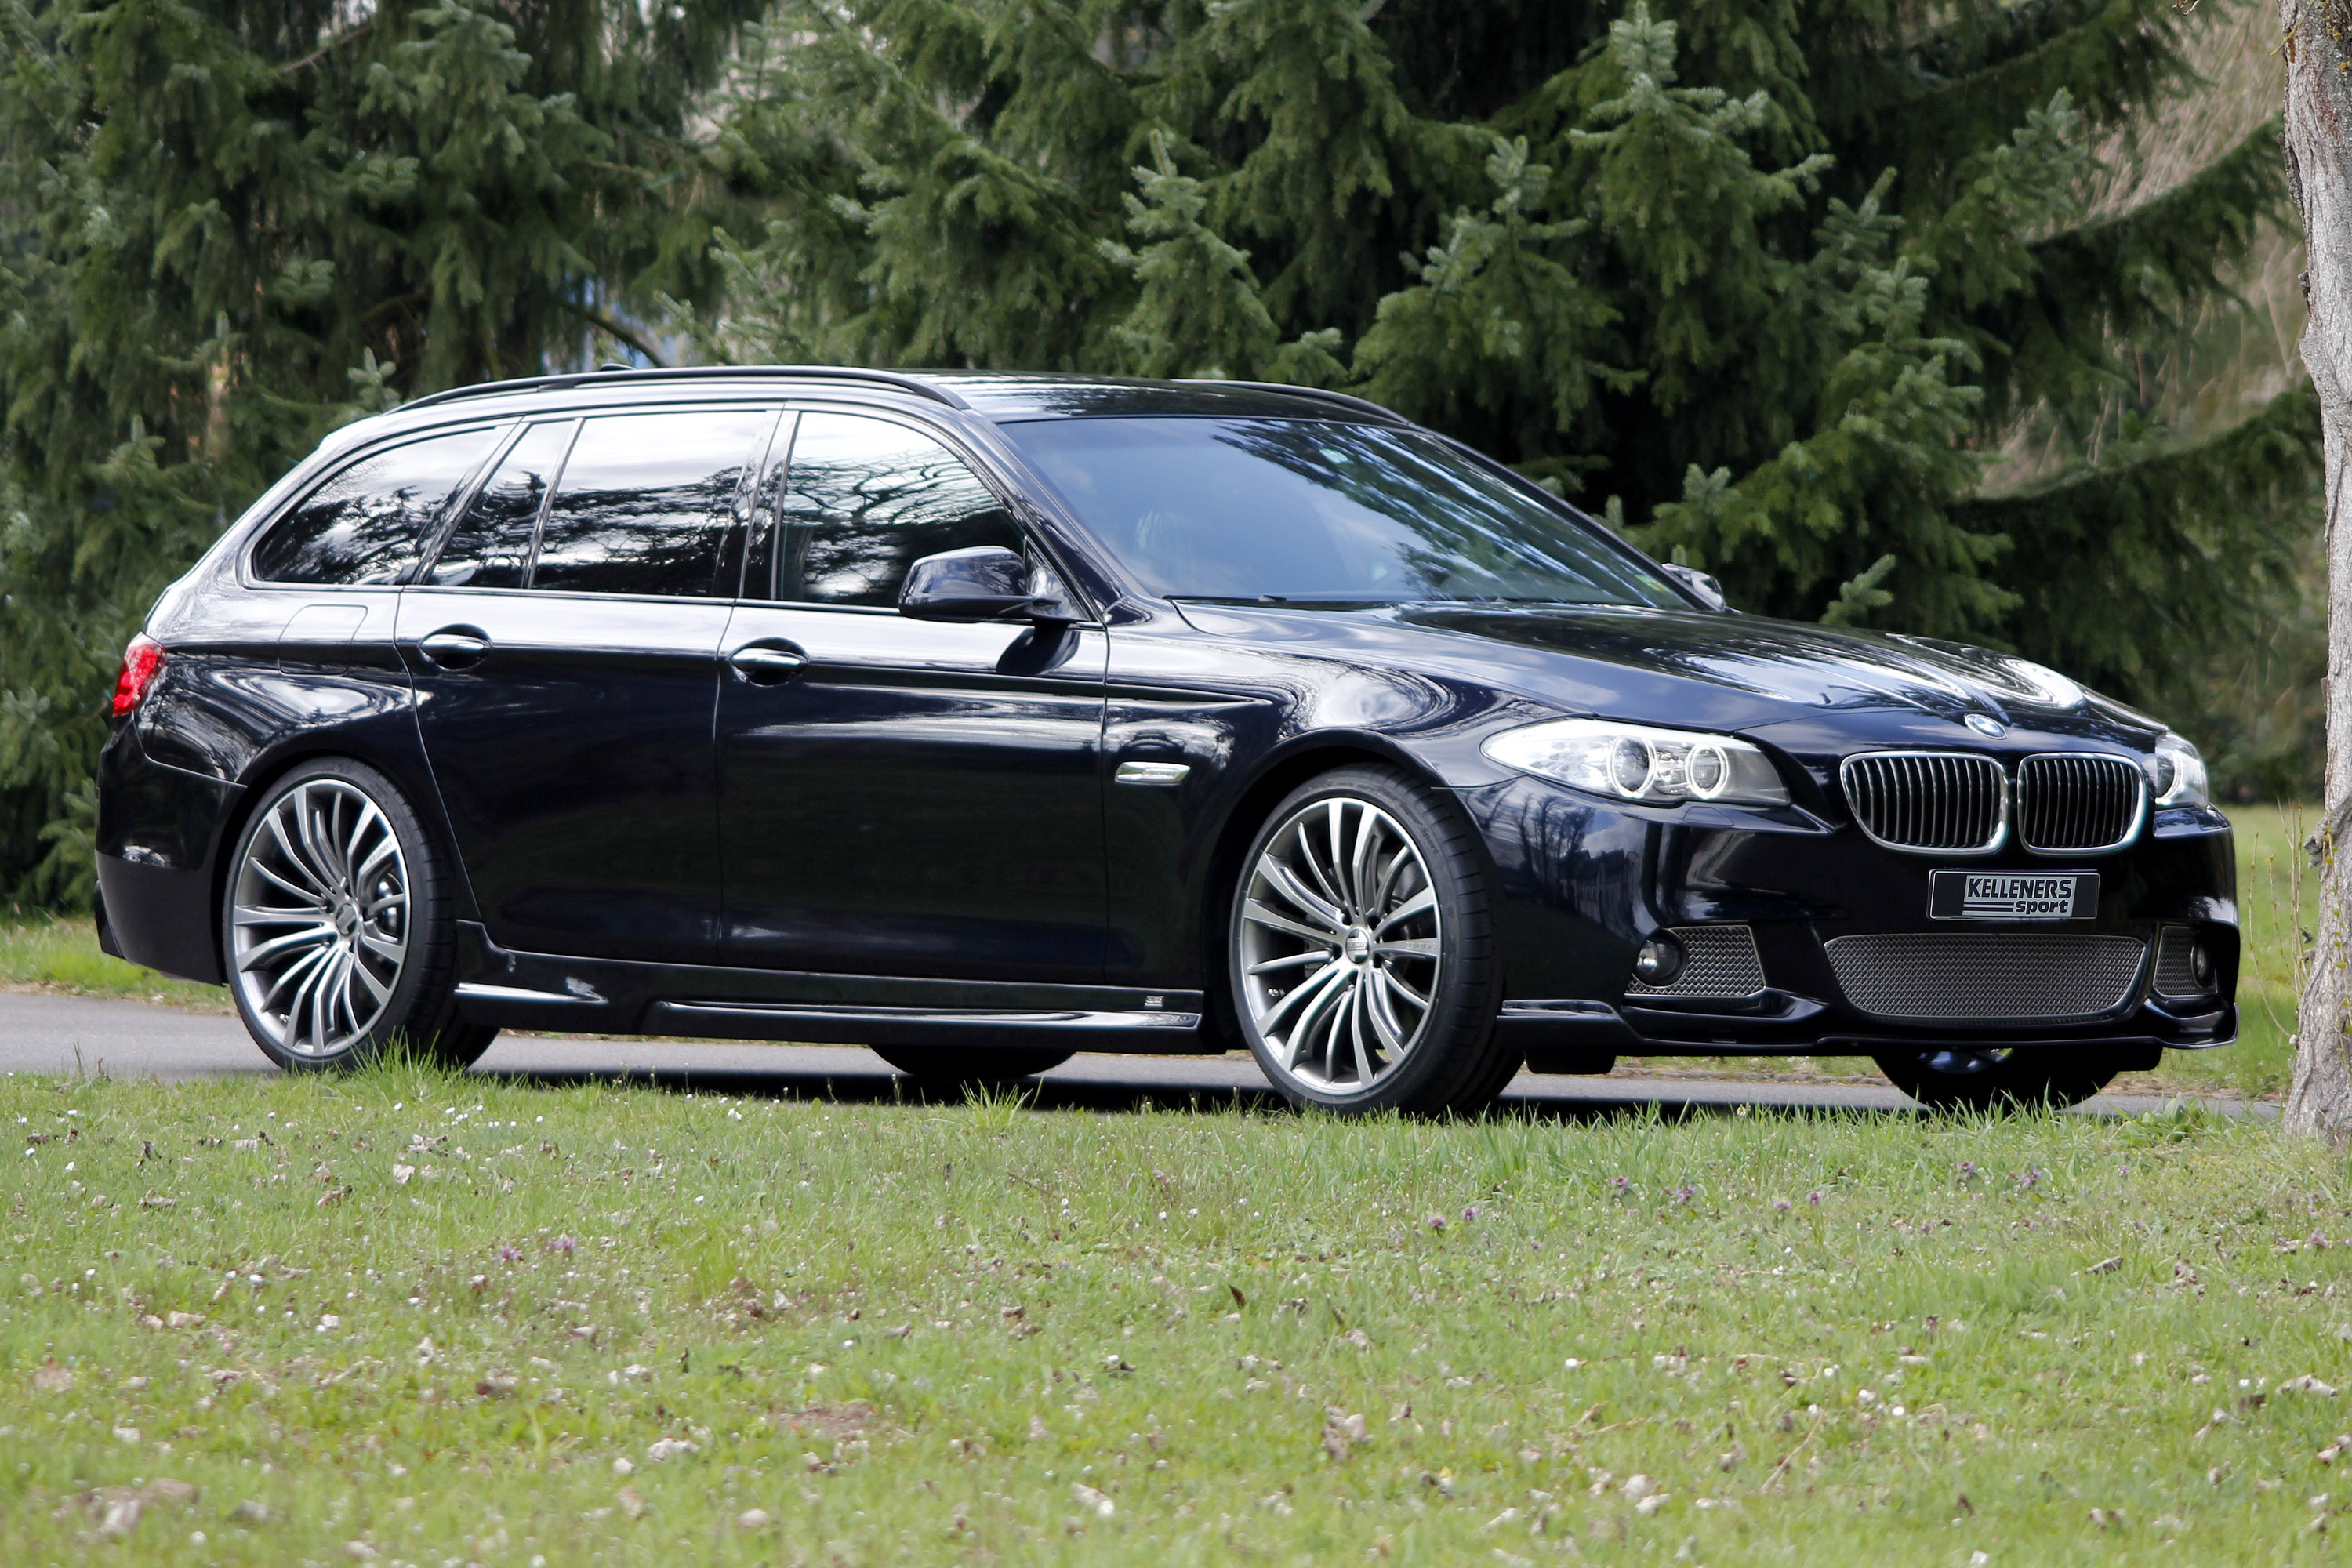 Kelleners Sport BMW 5 Series Touring - Picture 69088